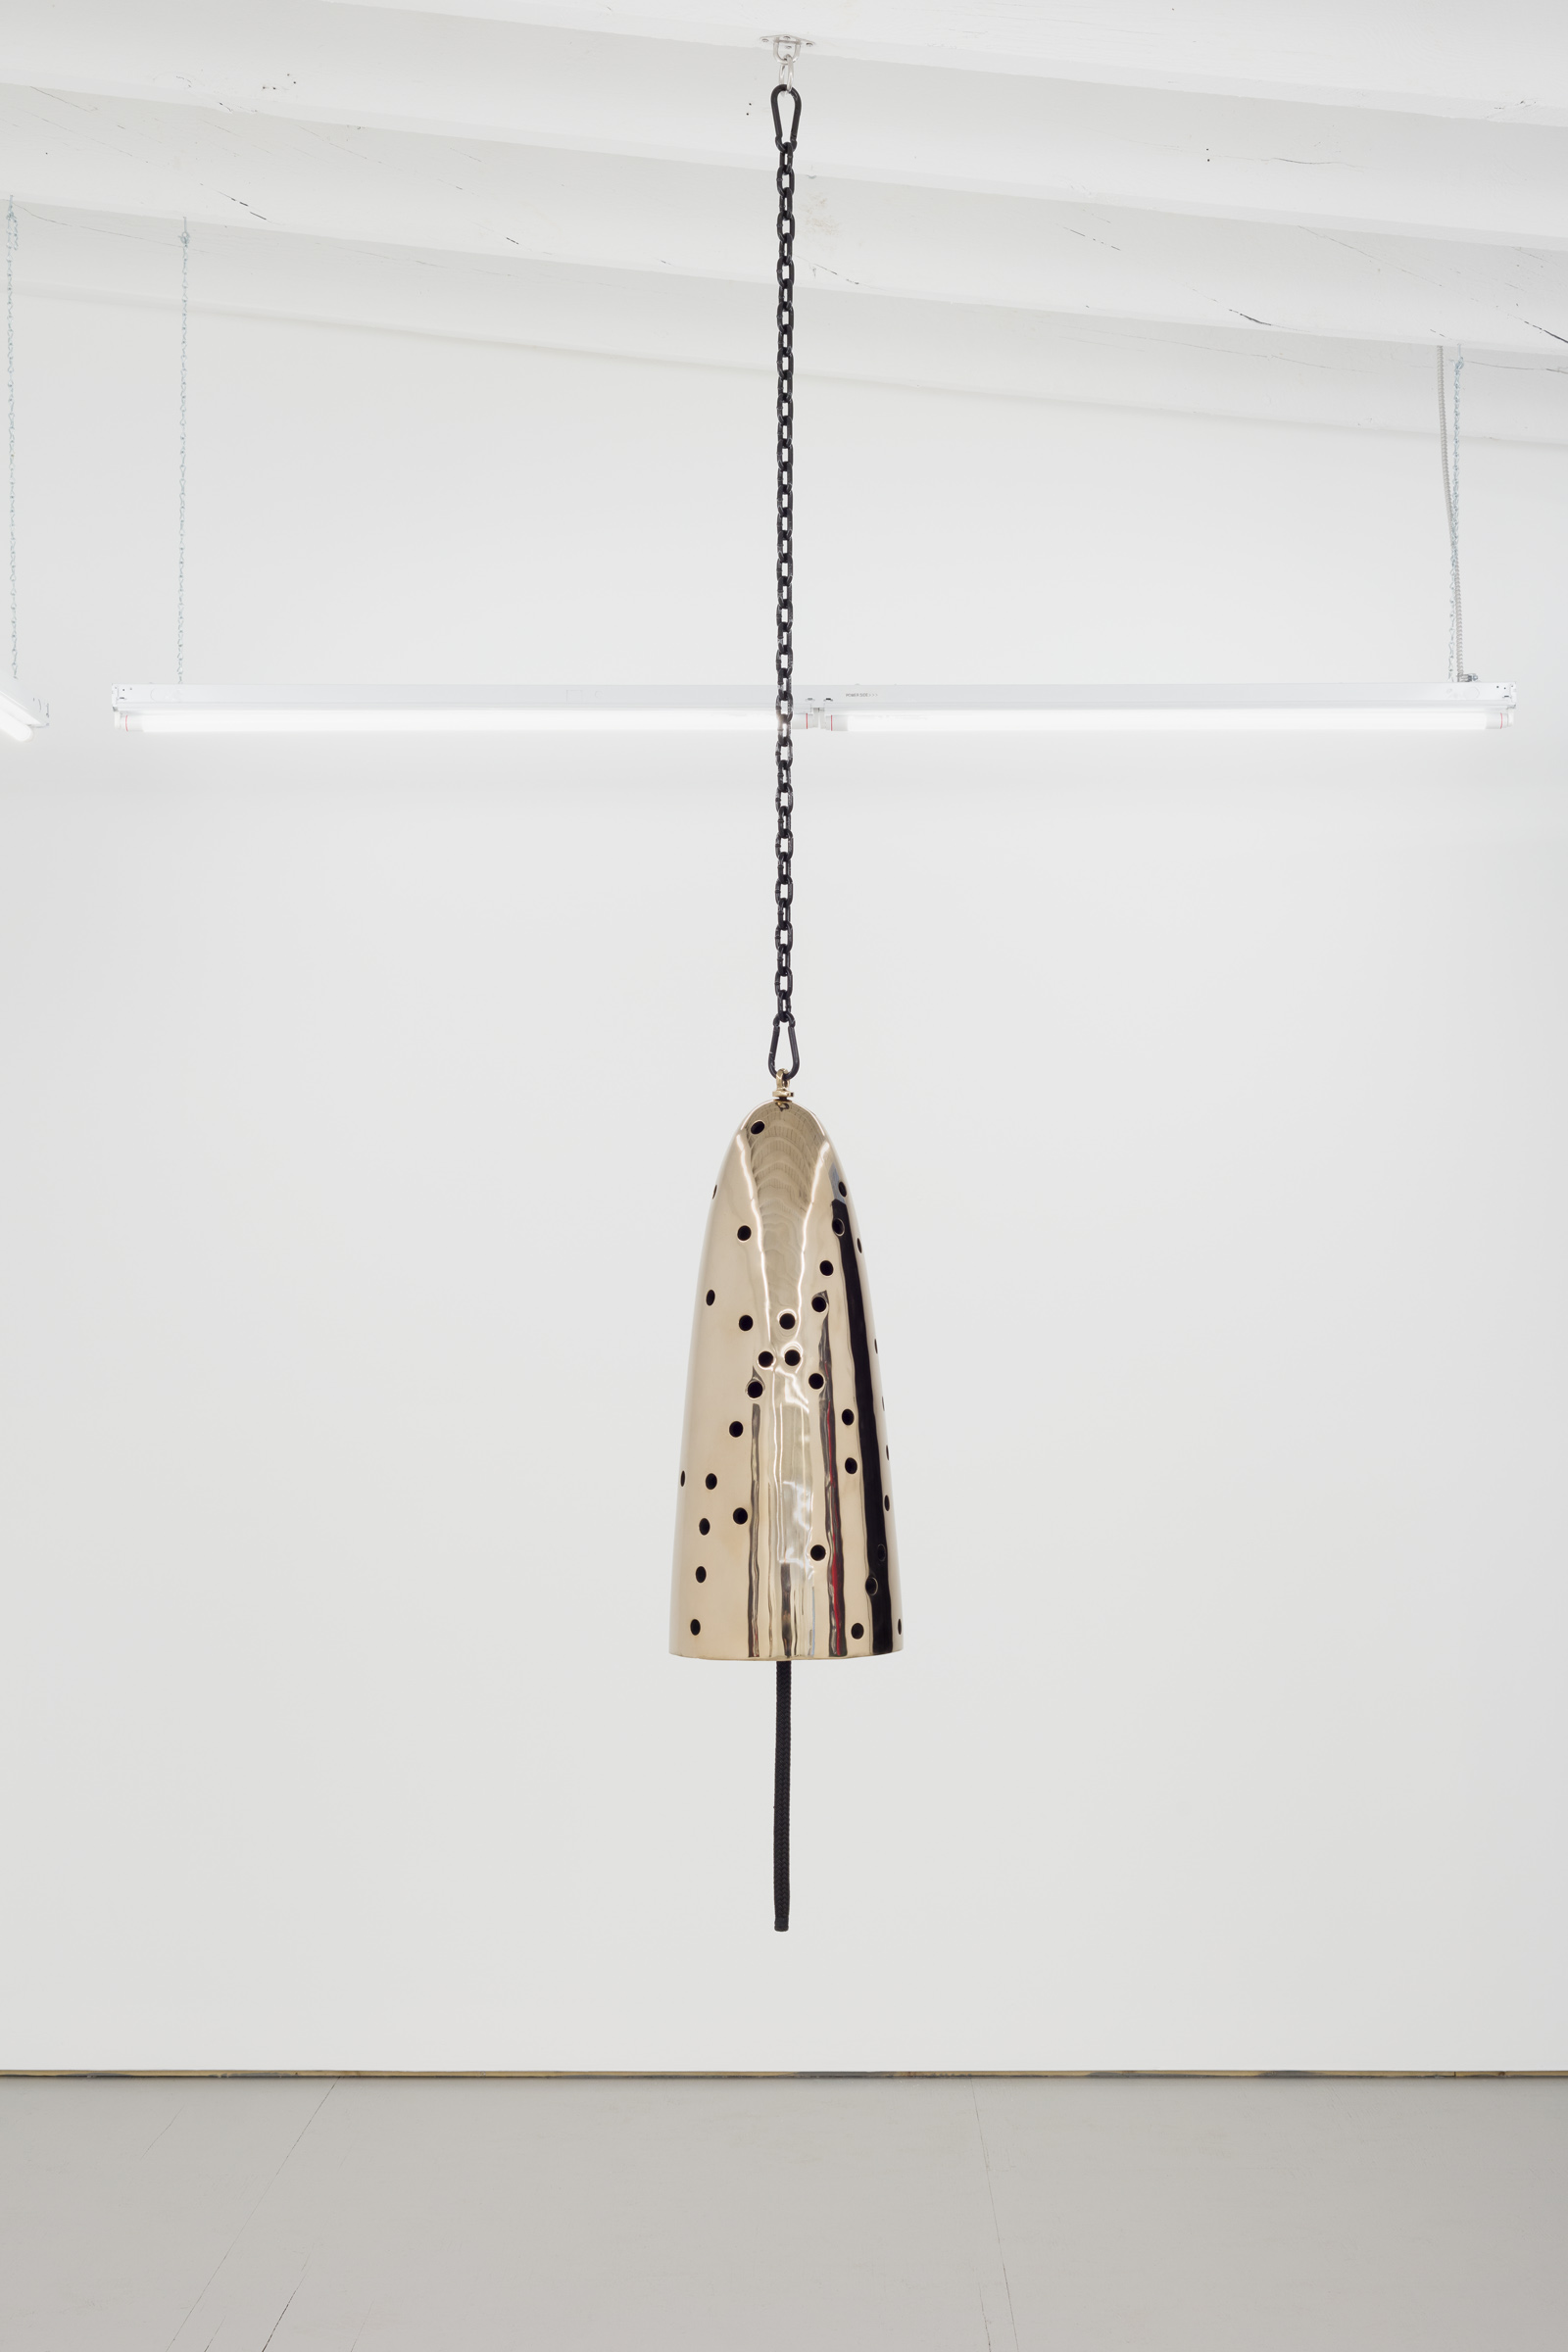 Davina Semo   Siren , 2019 Polished and patinated cast bronze bell, whipped nylon line, wooden clapper, powder-coated chain, hardware Bell: 32 in. tall x 13 in. diameter